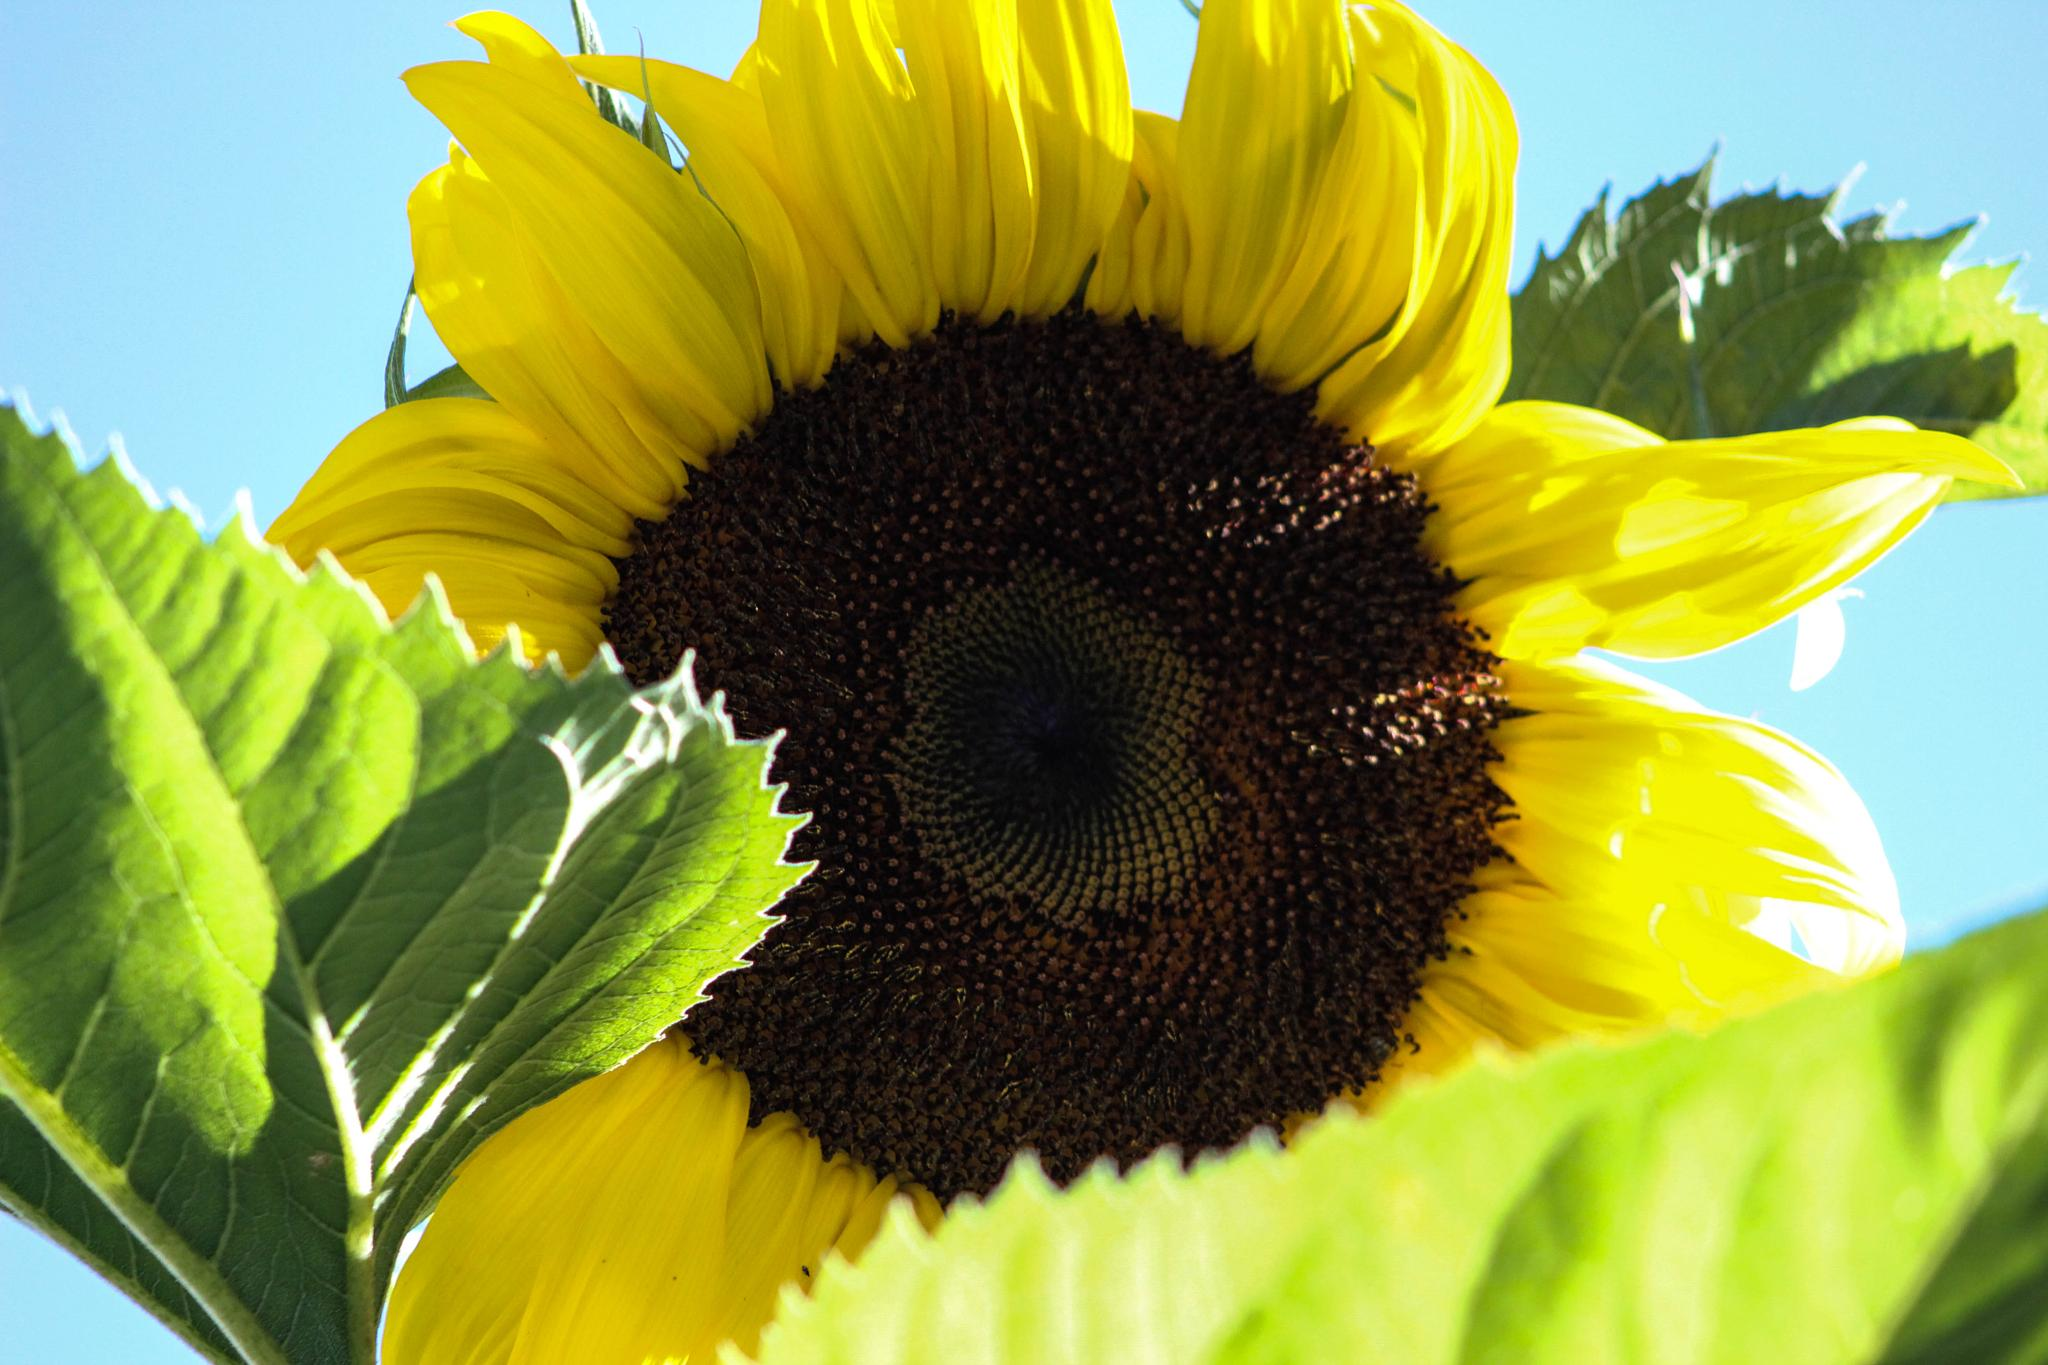 One of my HUGE sunflower by teresa.patterson.71